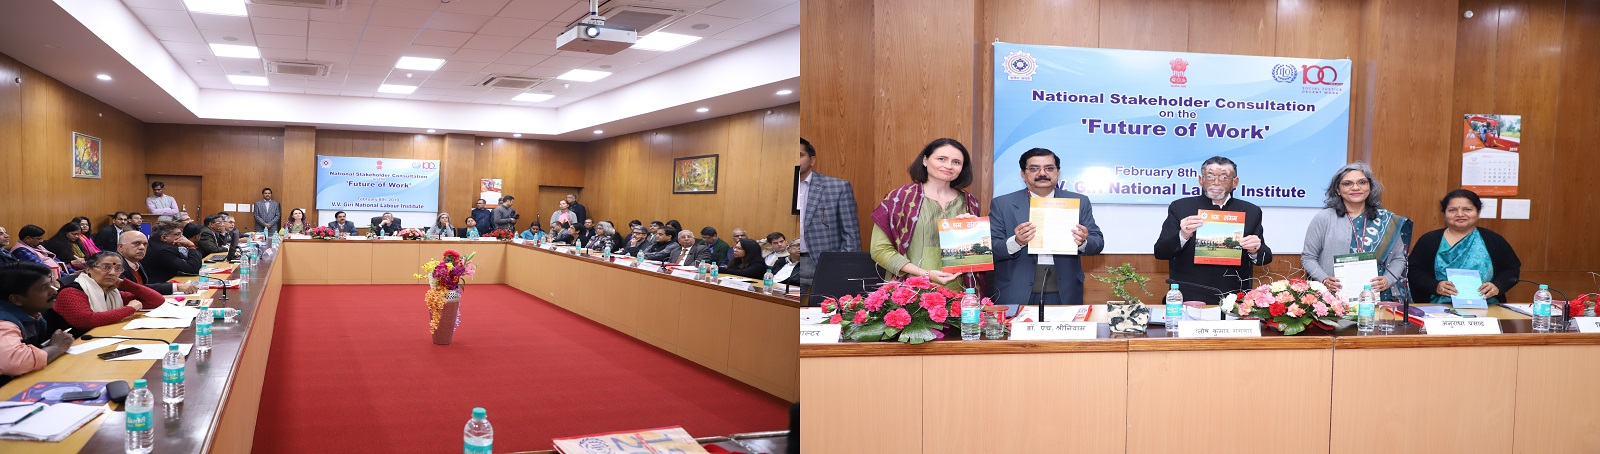 During this occasion Shri Santosh Kumar Gangwar, Hon'ble Minister of State for Labour & Employment (I/c) and others released the Future of Work Report, Work for a Brighter Future and VVGNLI publications titled 'Shram Sangam', 'Child Hope', 'Indradanush',